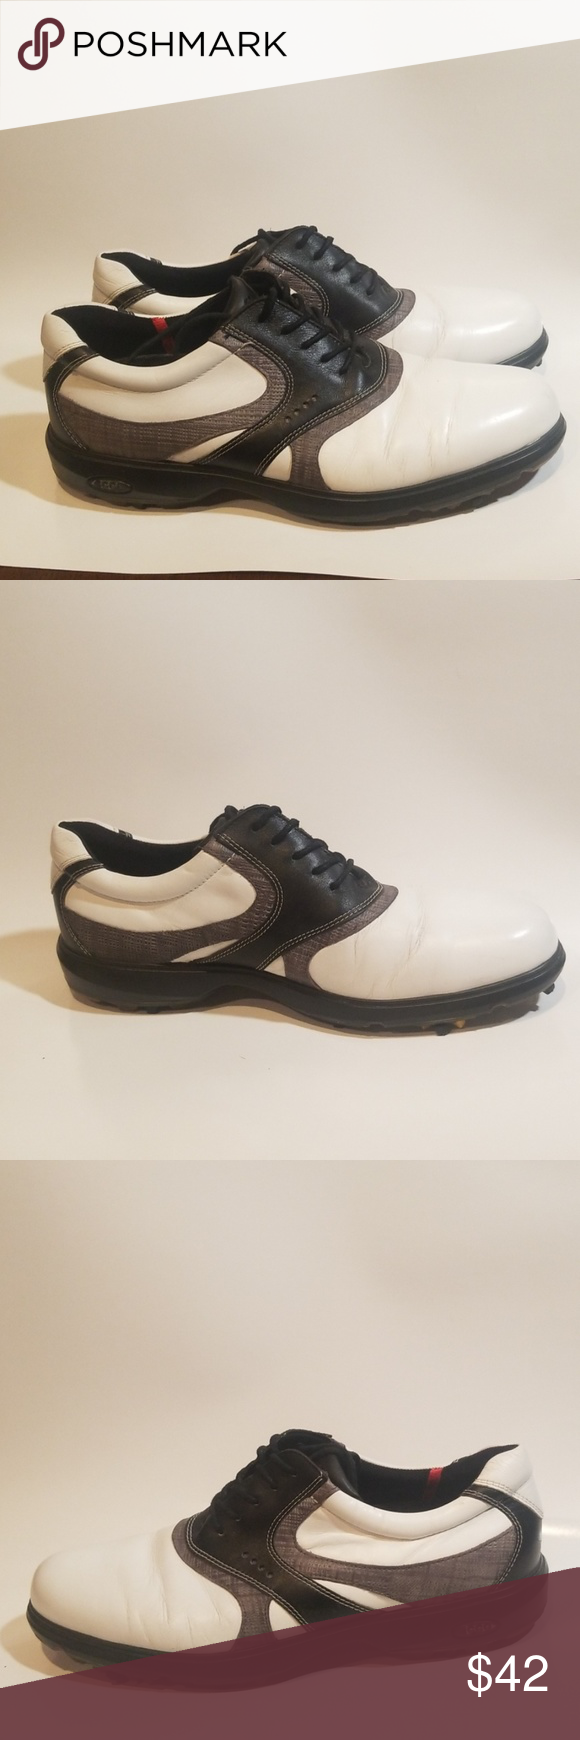 87104371cd21 ECCO MENS GOLF SHOE SIZE 42 In excellent condition. Some wear on spikes but  can be replaced. Nice shoe. Ecco Shoes Athletic Shoes